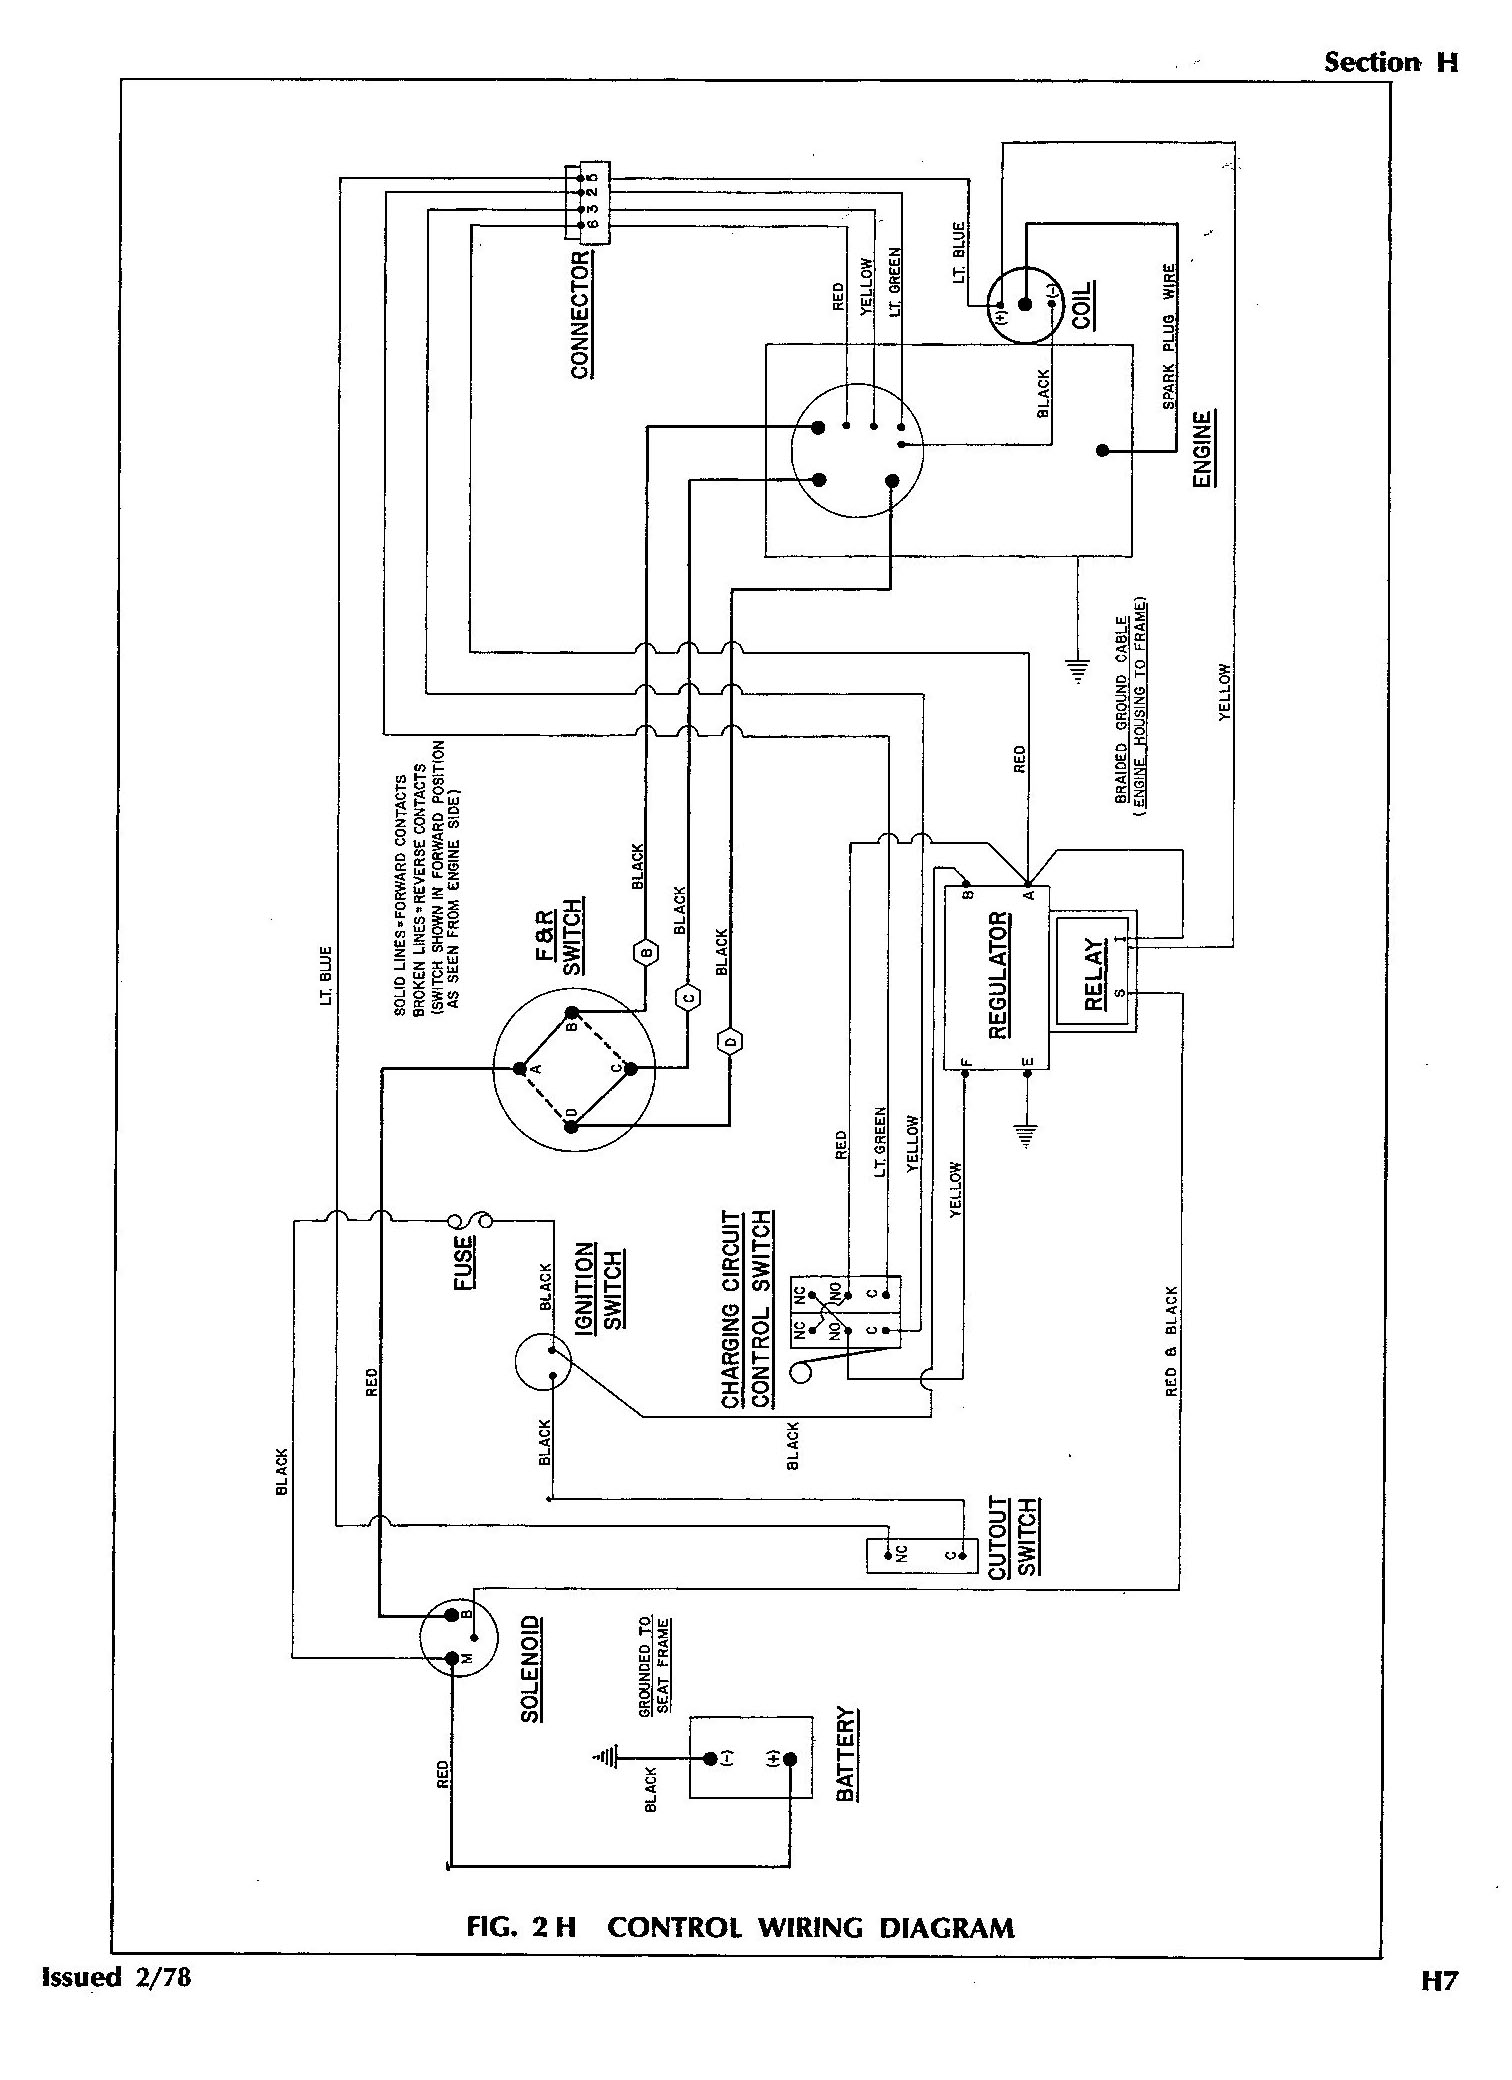 ez go marathon golf cart wiring diagram ez image ezgo 36 volt golf cart wiring diagram images on ez go marathon golf cart wiring diagram